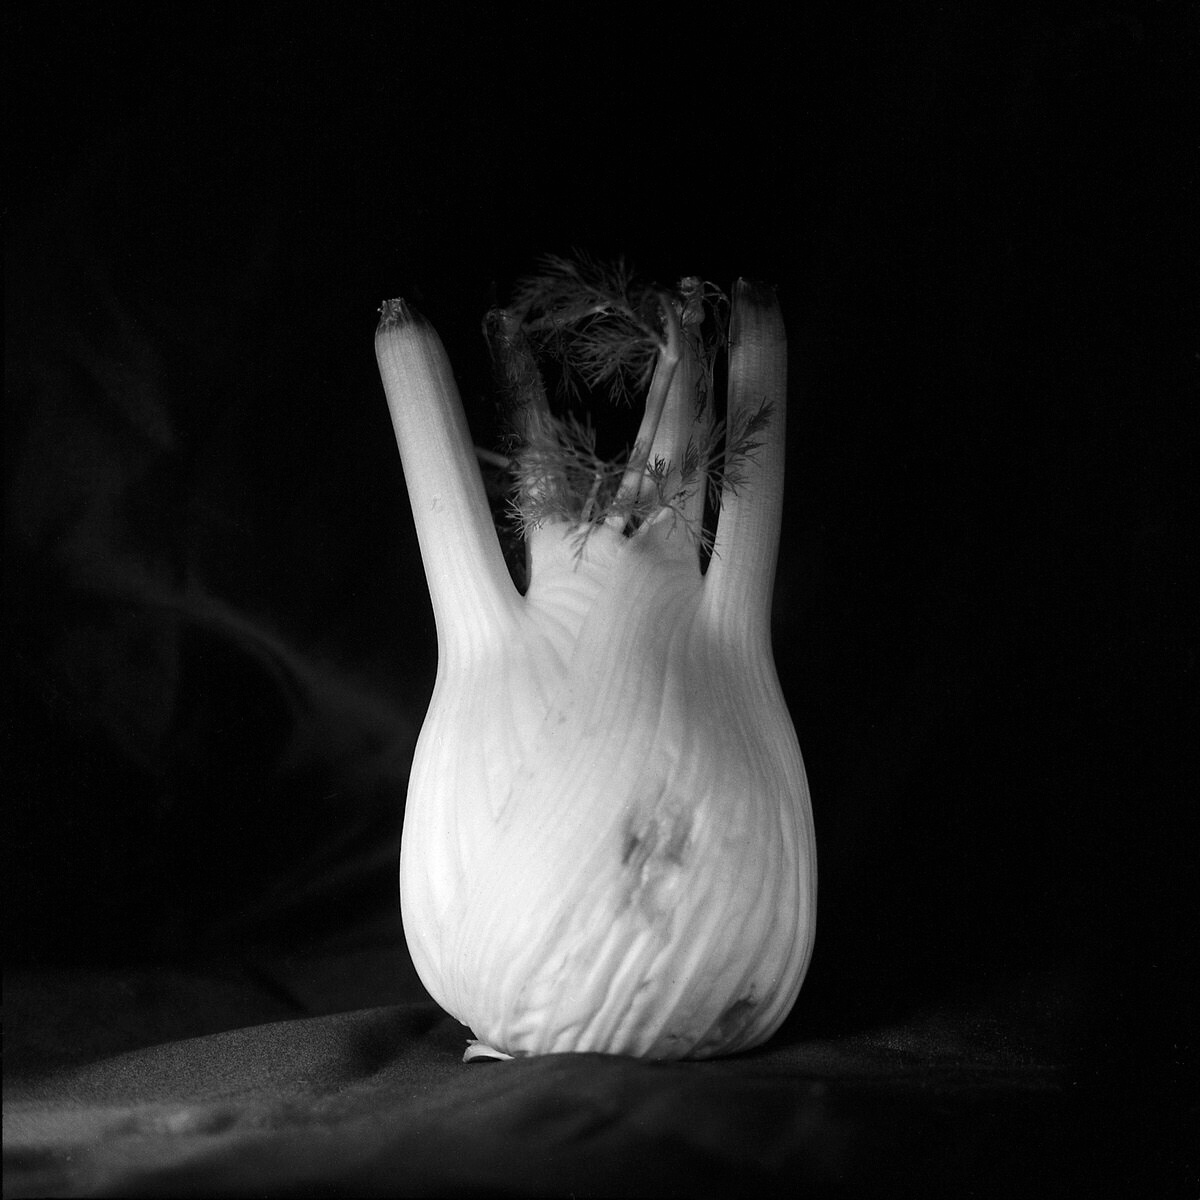 Fennel – Still Life Photography - Yashica MAT-124 with Fomapan 200 Creative